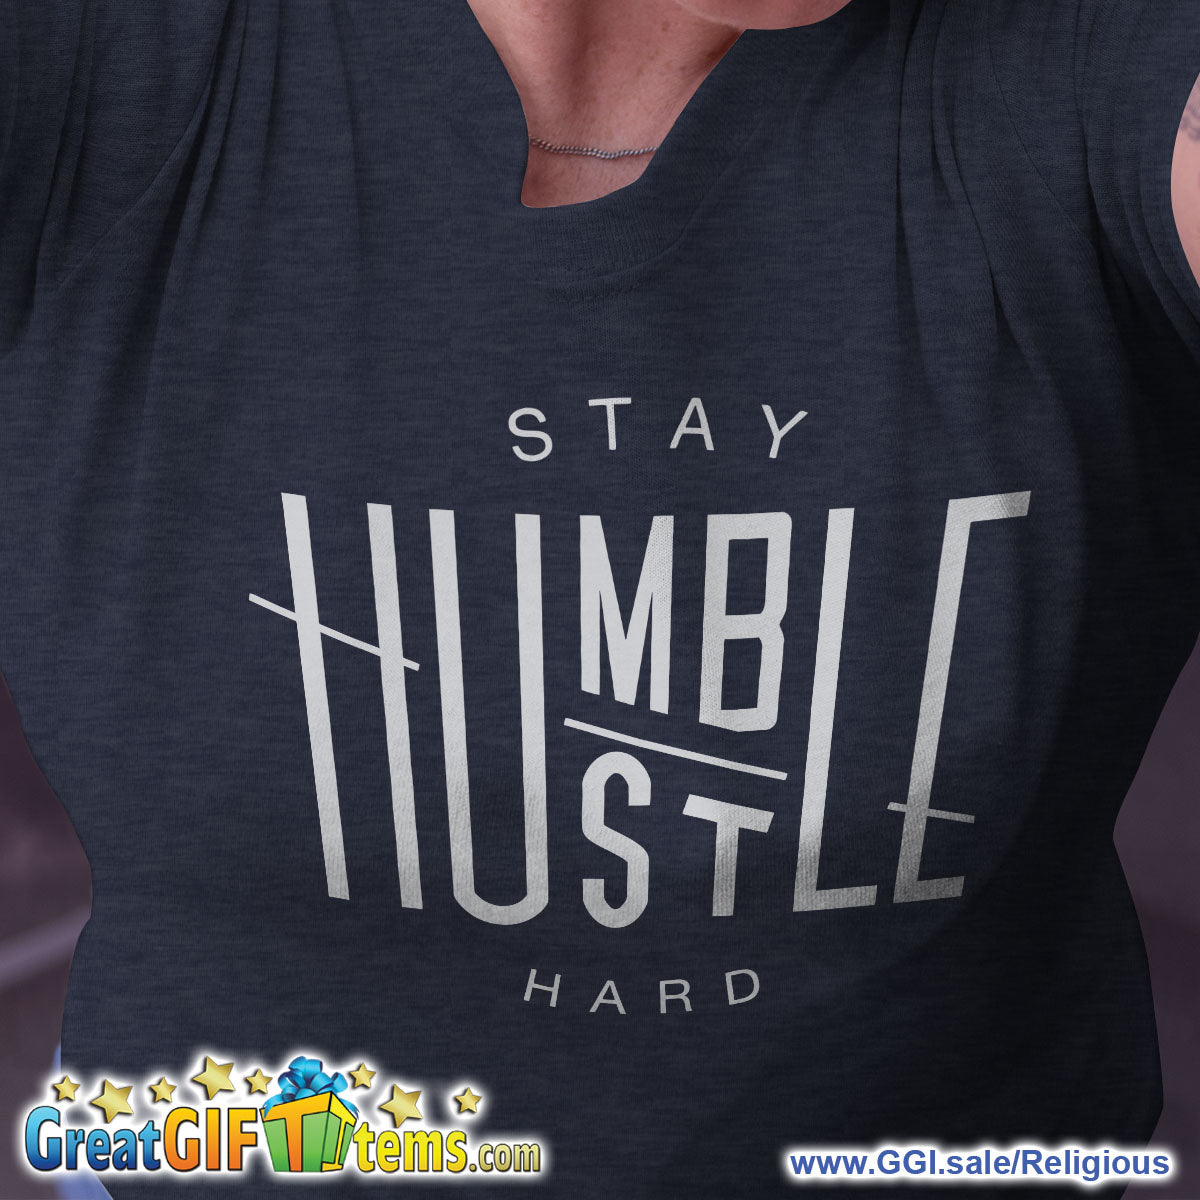 Stay Humble And Hustle Hard Heather Color T-Shirt